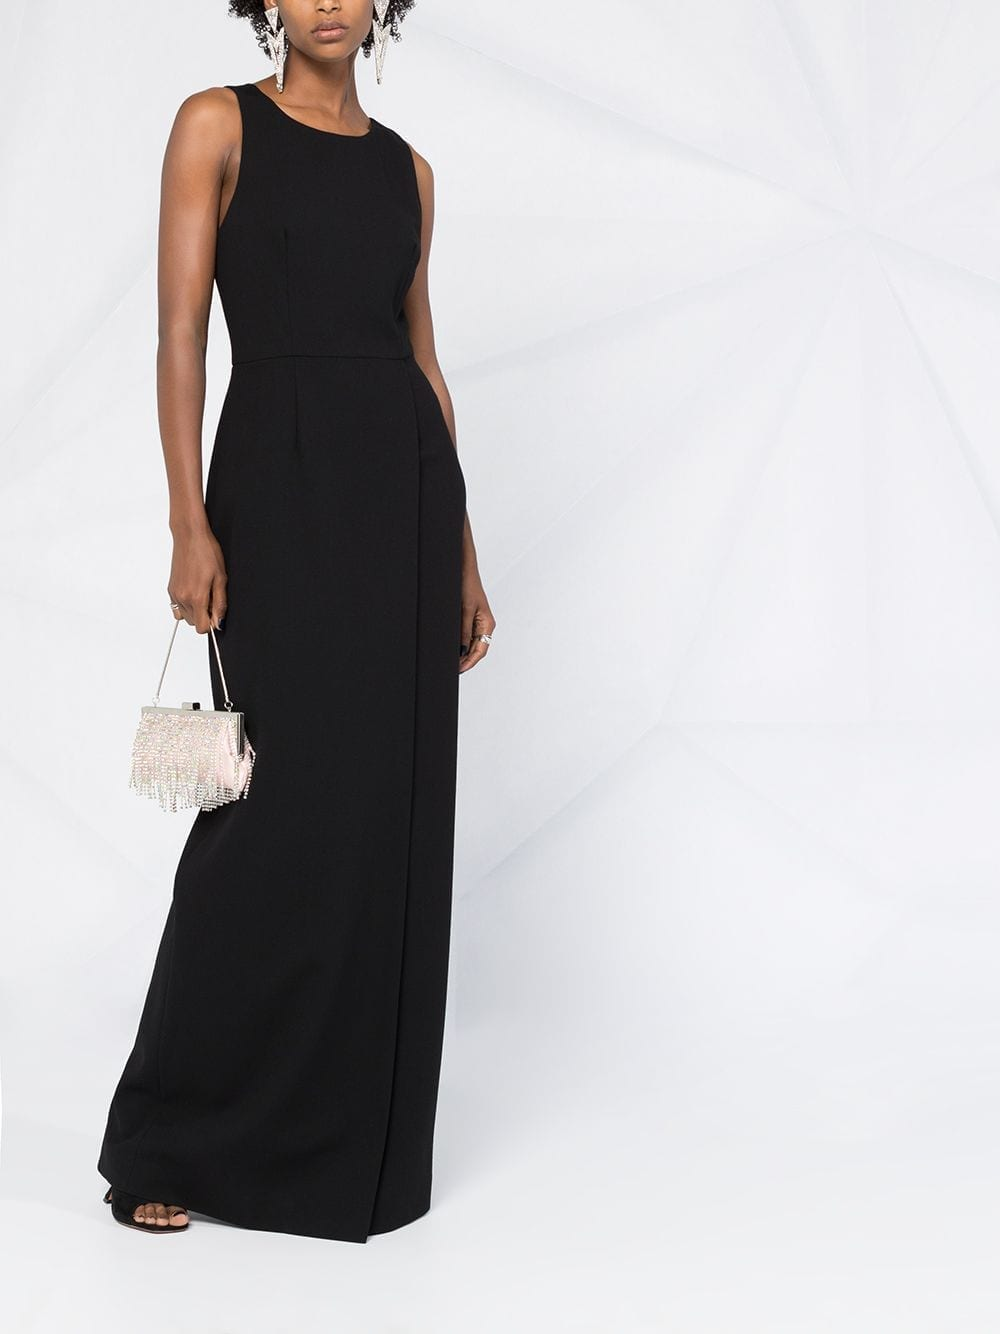 GIVENCHY Slit Detail Maxi Dress